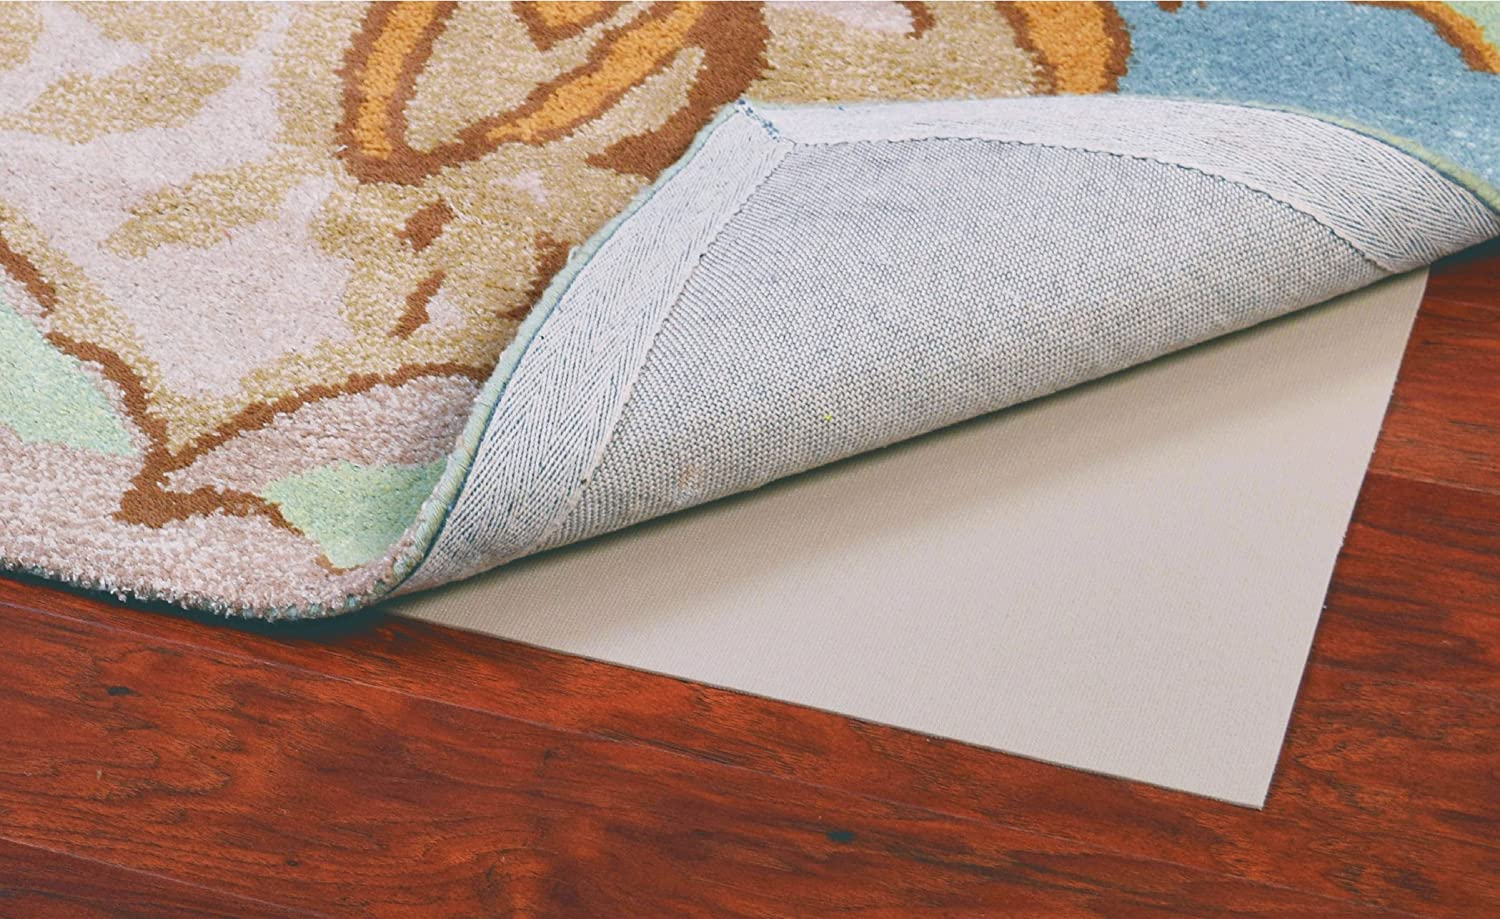 Grip-It Solid Cushioned Non-Slip Rug Pad for Rugs on Hard Surface Floors 10 by 14-Feet MSM Industries GRPSOL10X14